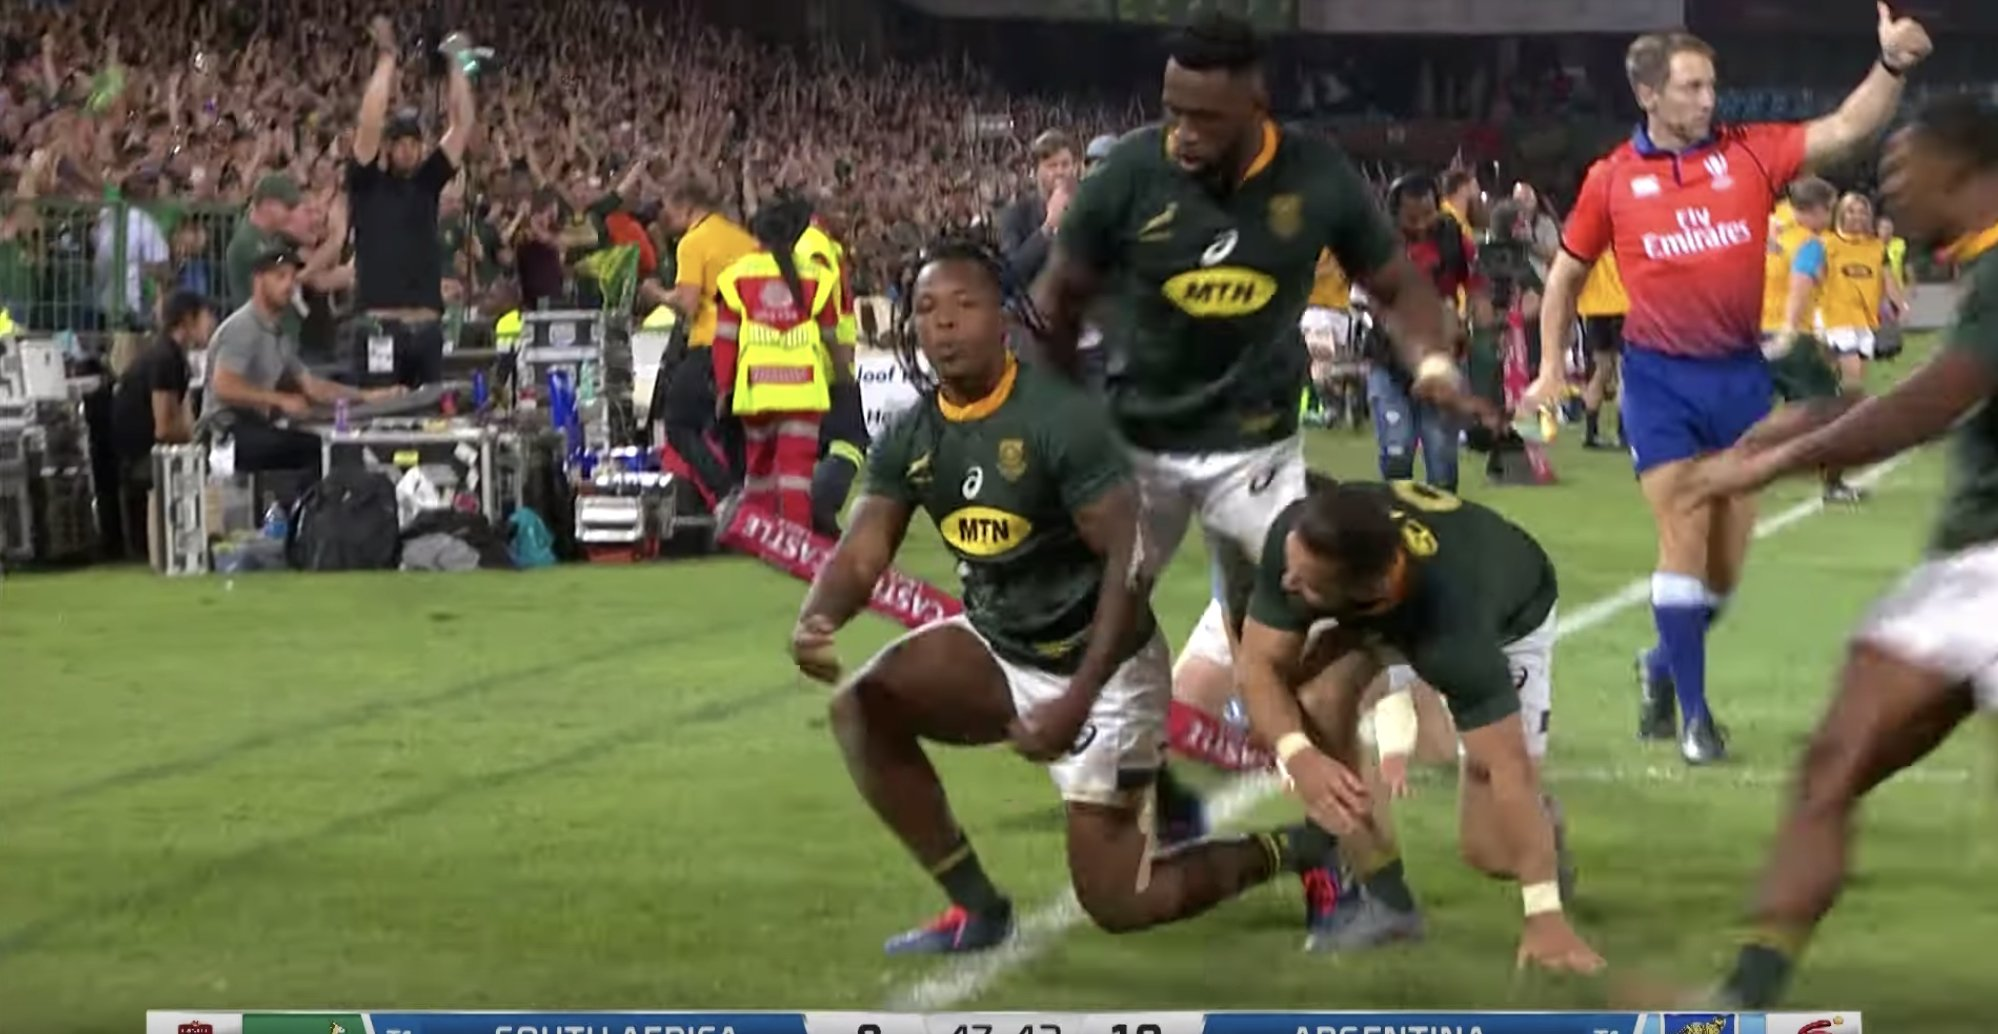 South African winger Nkosi beats three defenders for outrageous solo finish